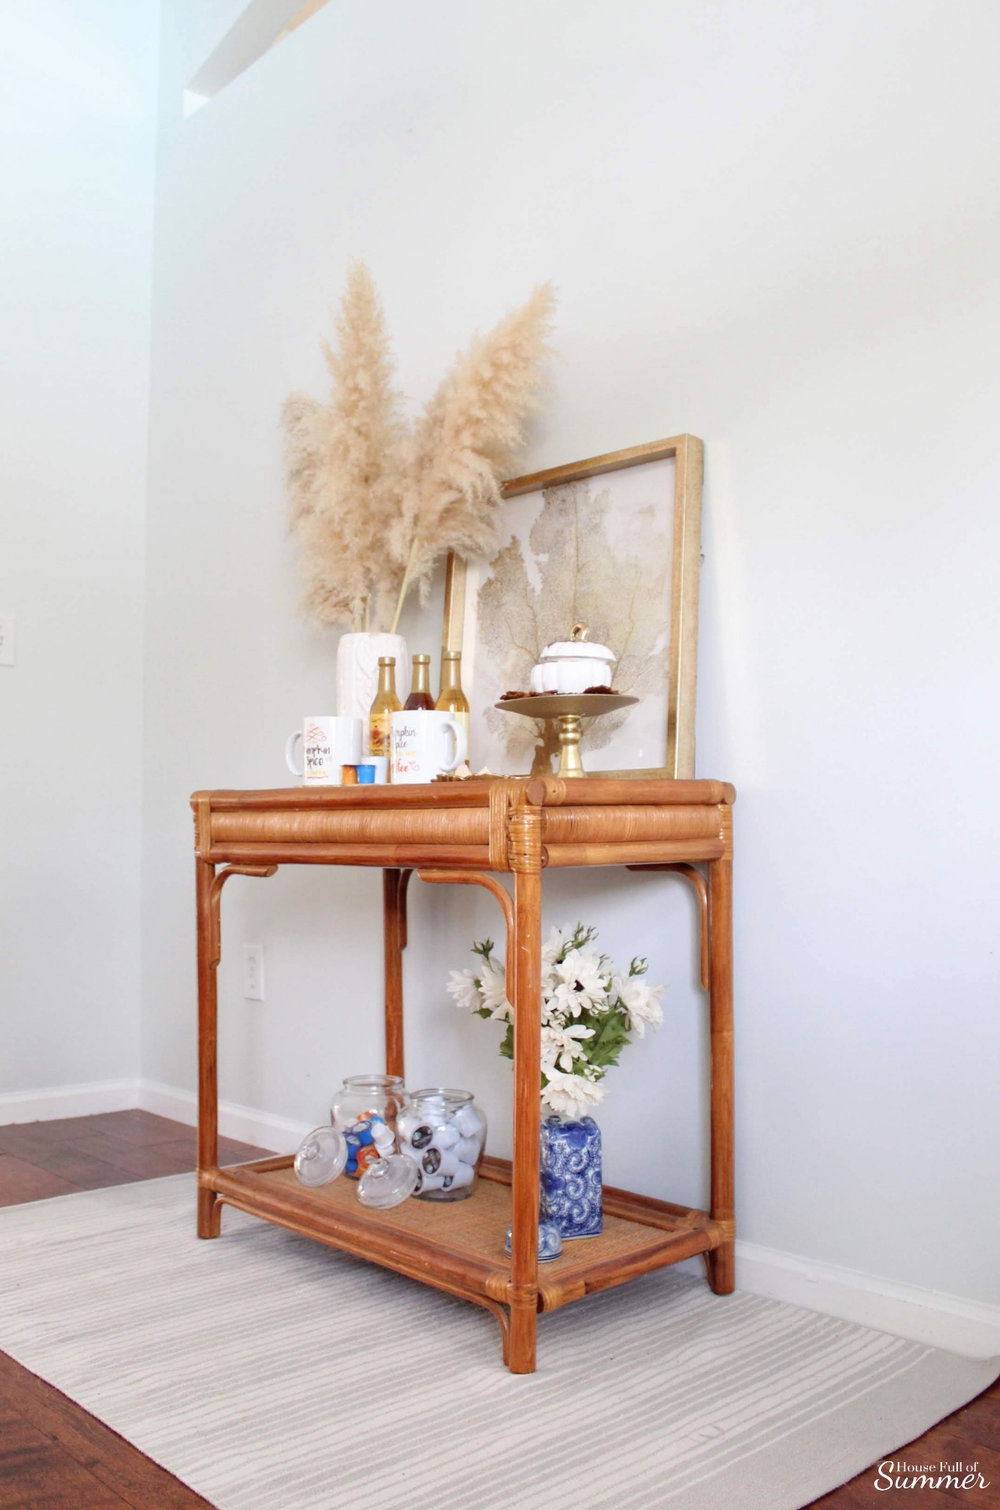 5 Items You'd Never Guess I Found on Craigslist - cheap decorating ideas, budget decor, DIY home ideas, cane furniture, coastal home decor, guest room #housefullofsummer